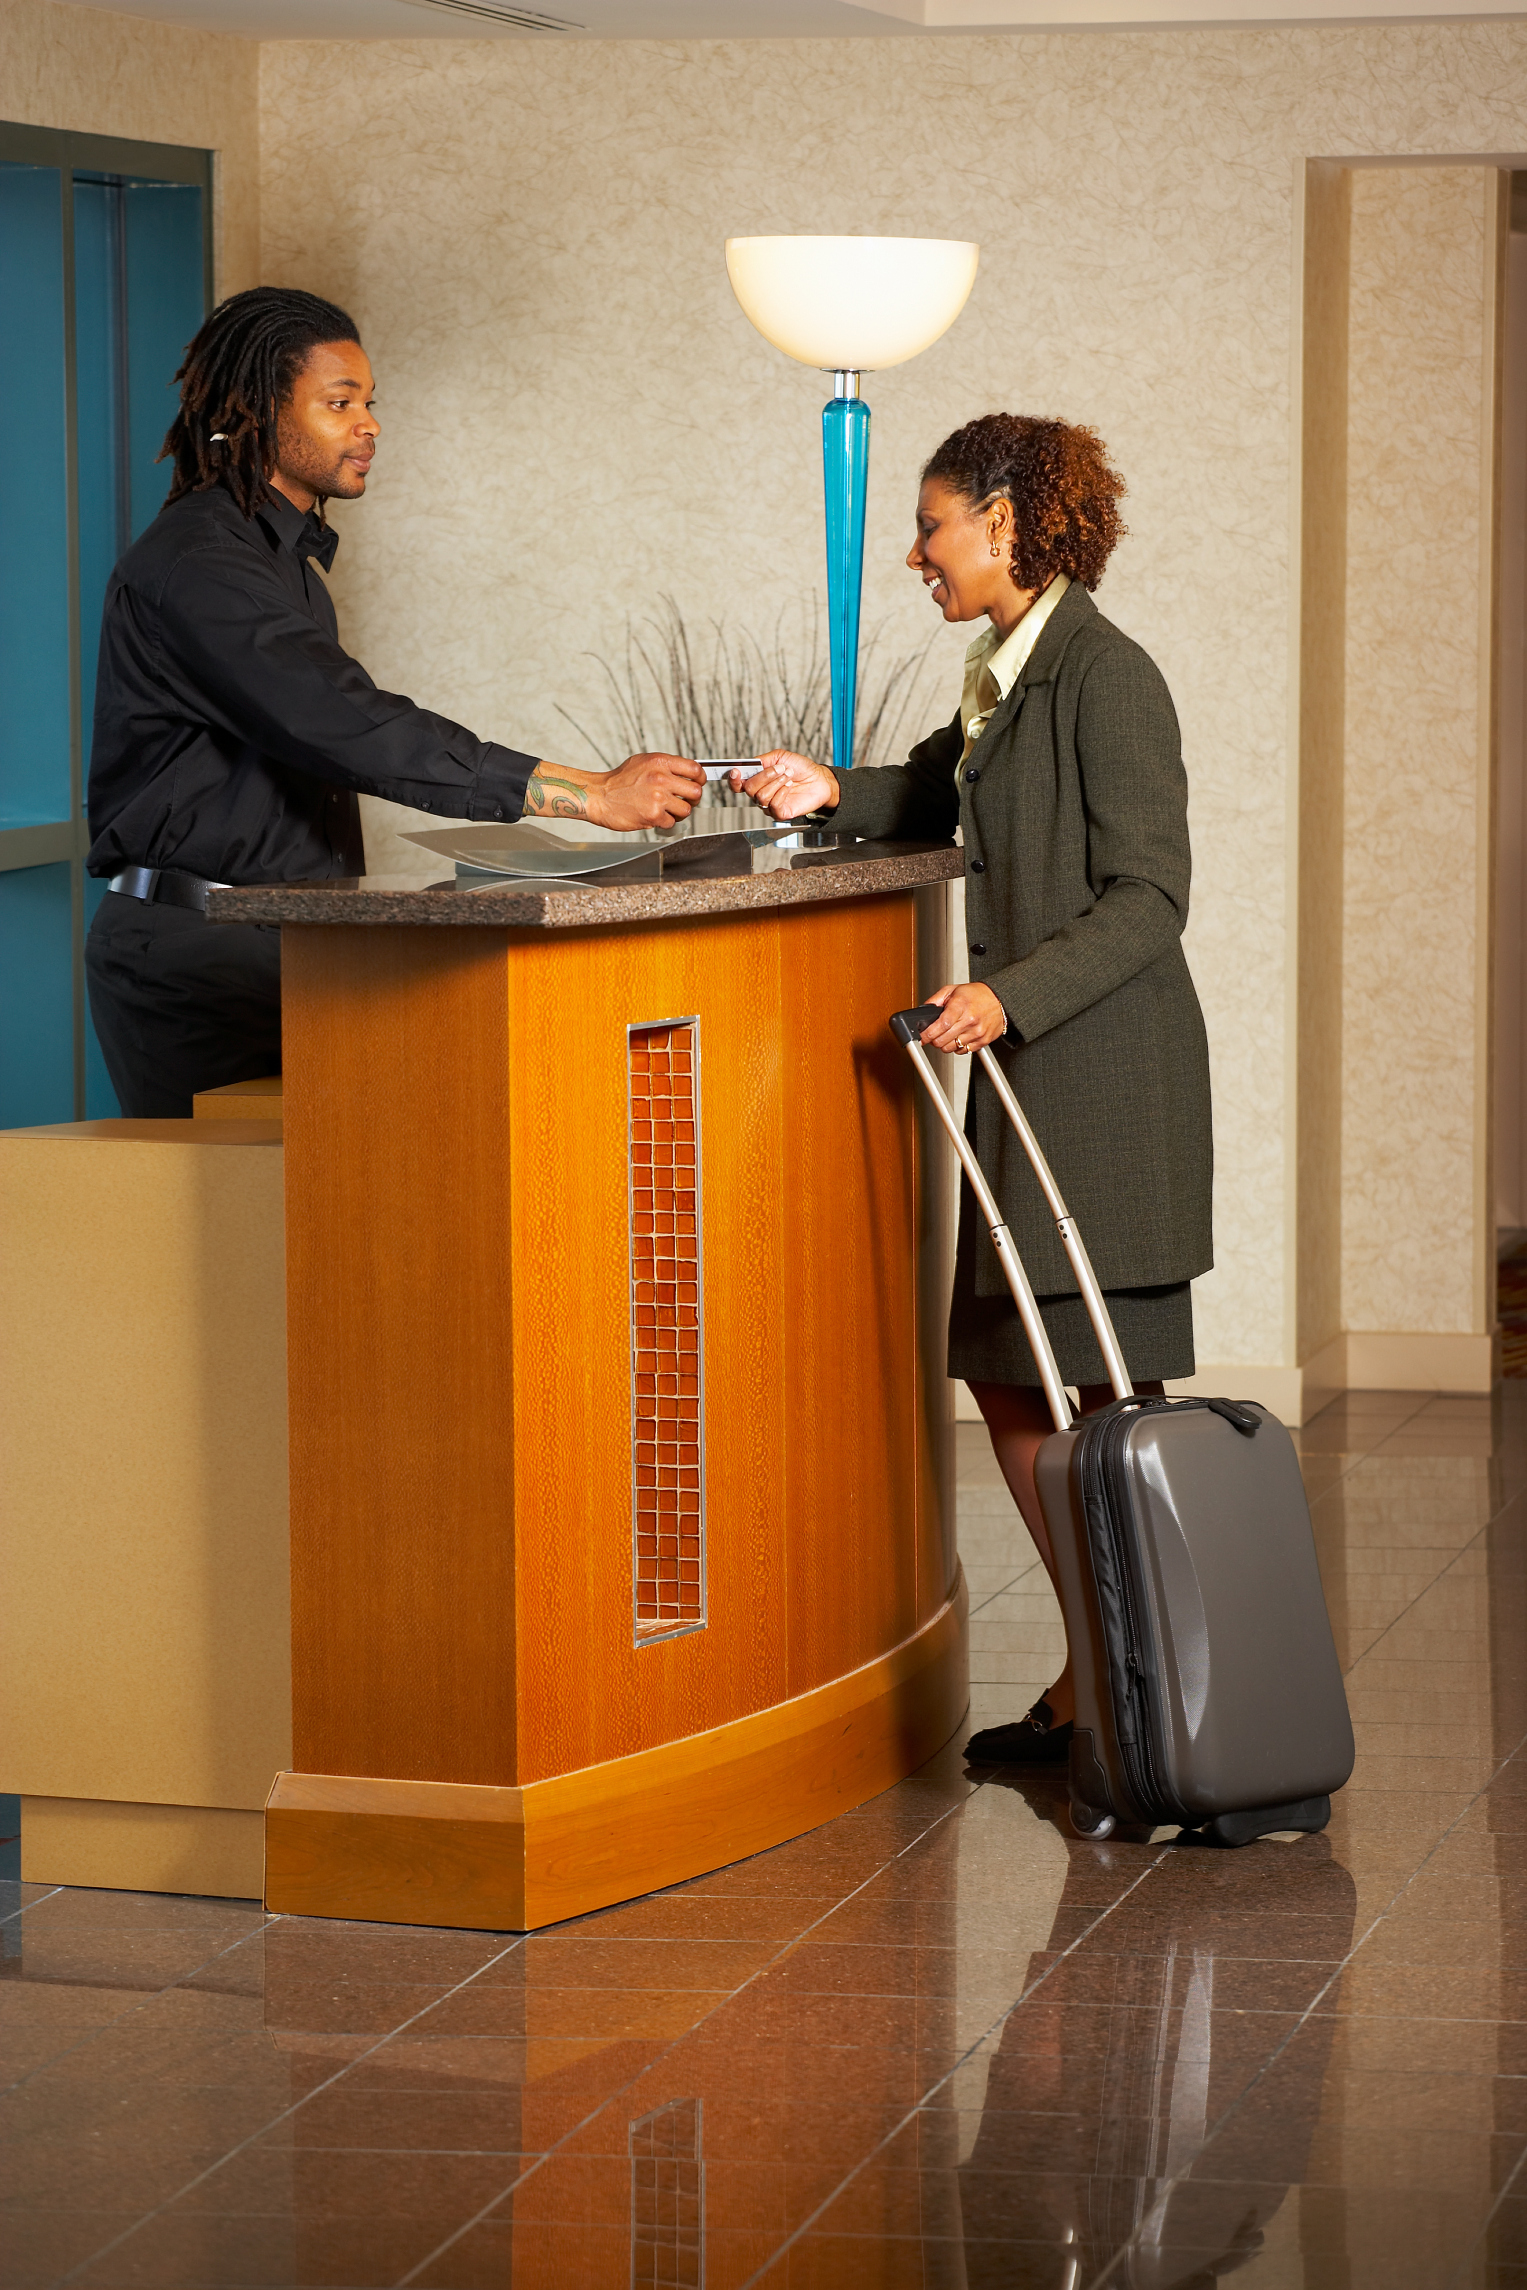 Can I Write Off Hotel Expenses for a Job? | Finance - Zacks